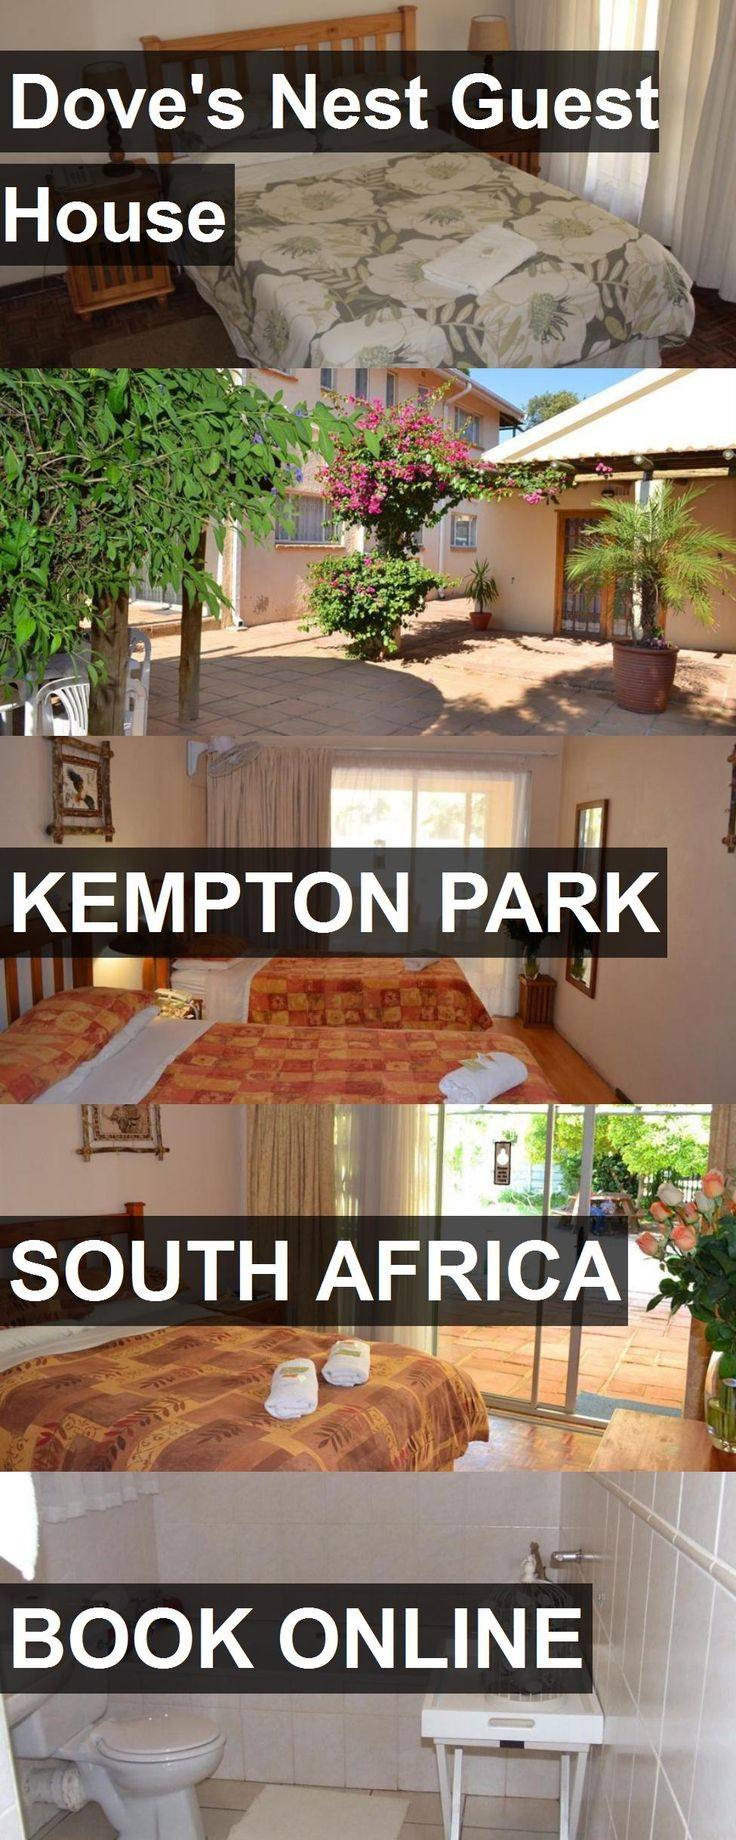 Hotel Dove's Nest Guest House in Kempton Park, South Africa. For more information, photos, reviews and best prices please follow the link. #SouthAfrica #KemptonPark #Dove'sNestGuestHouse #hotel #travel #vacation